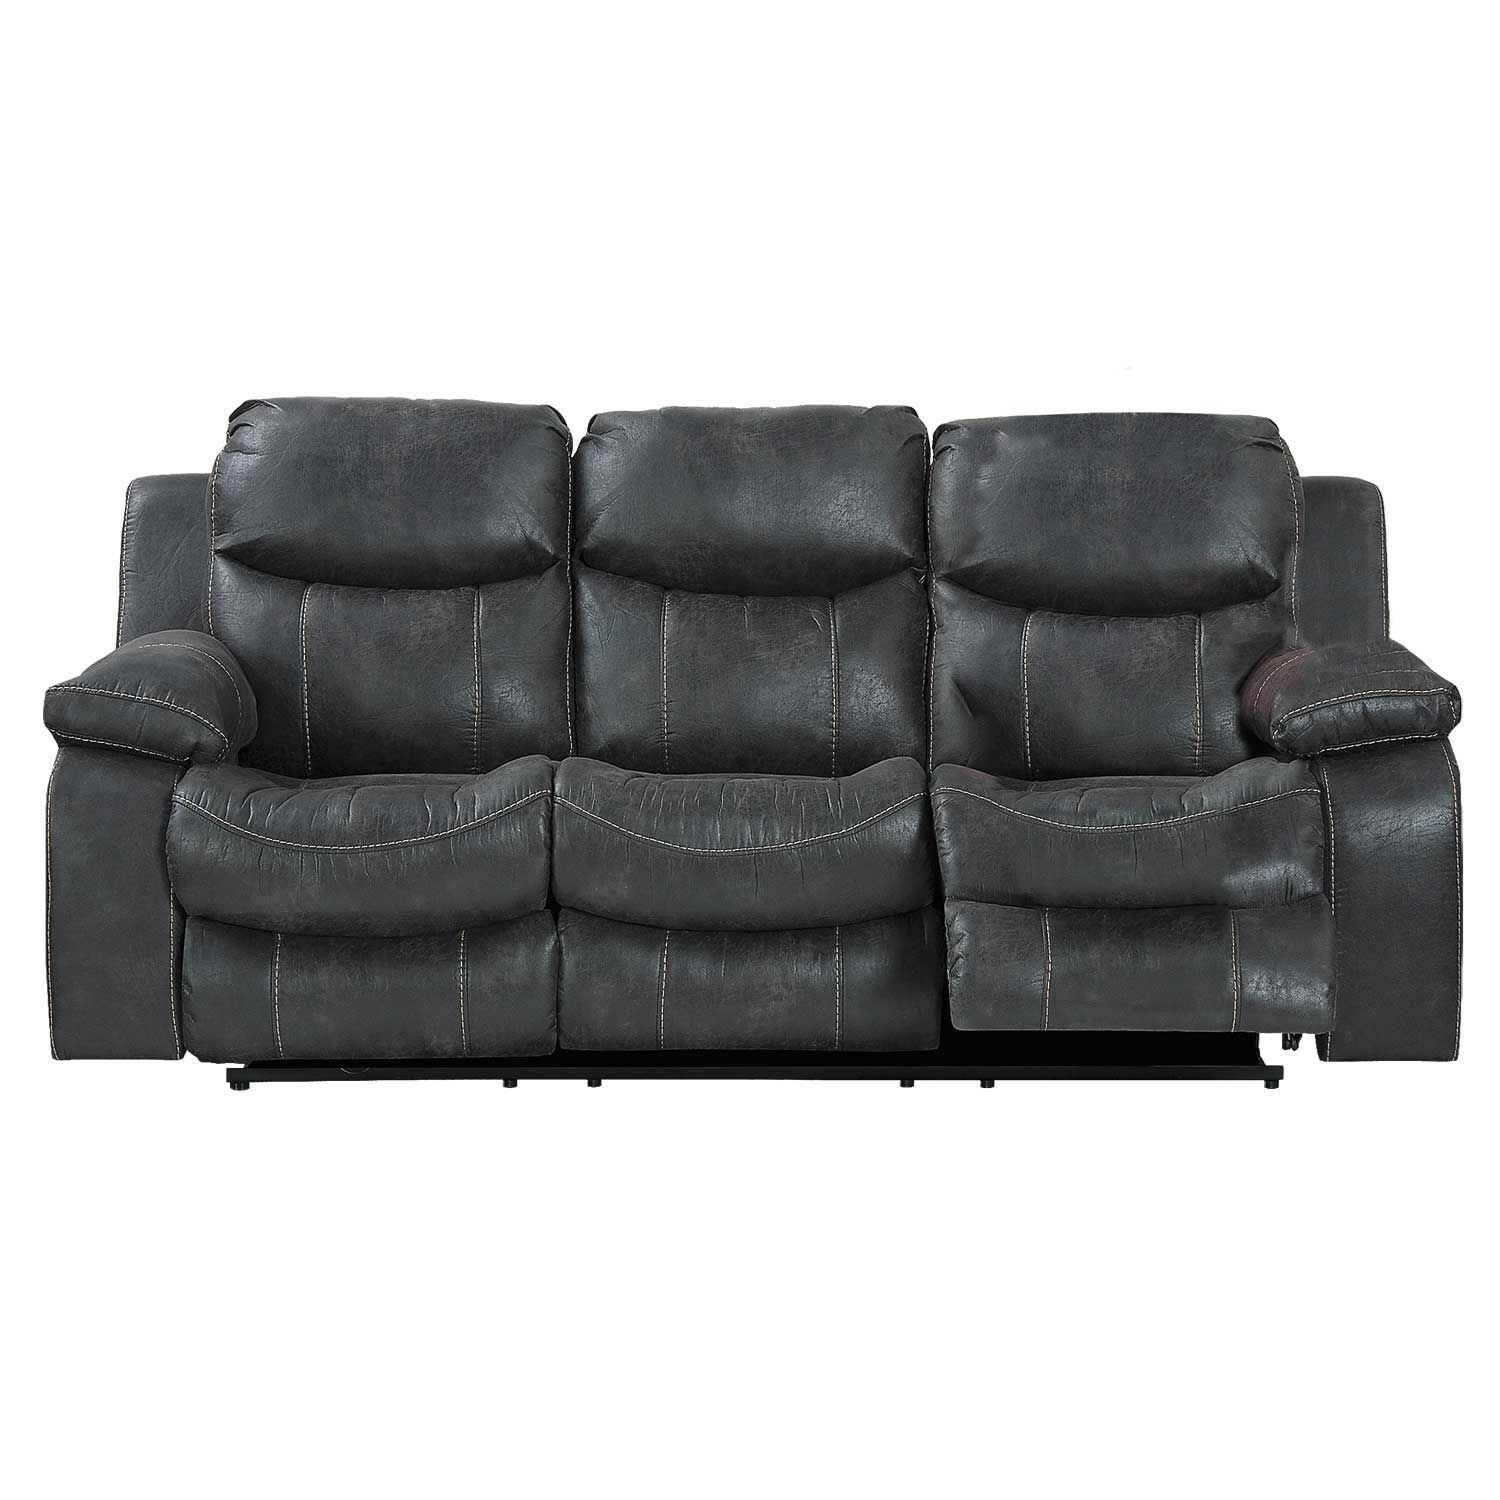 Stupendous Steel Power Reclining Sofa Bralicious Painted Fabric Chair Ideas Braliciousco